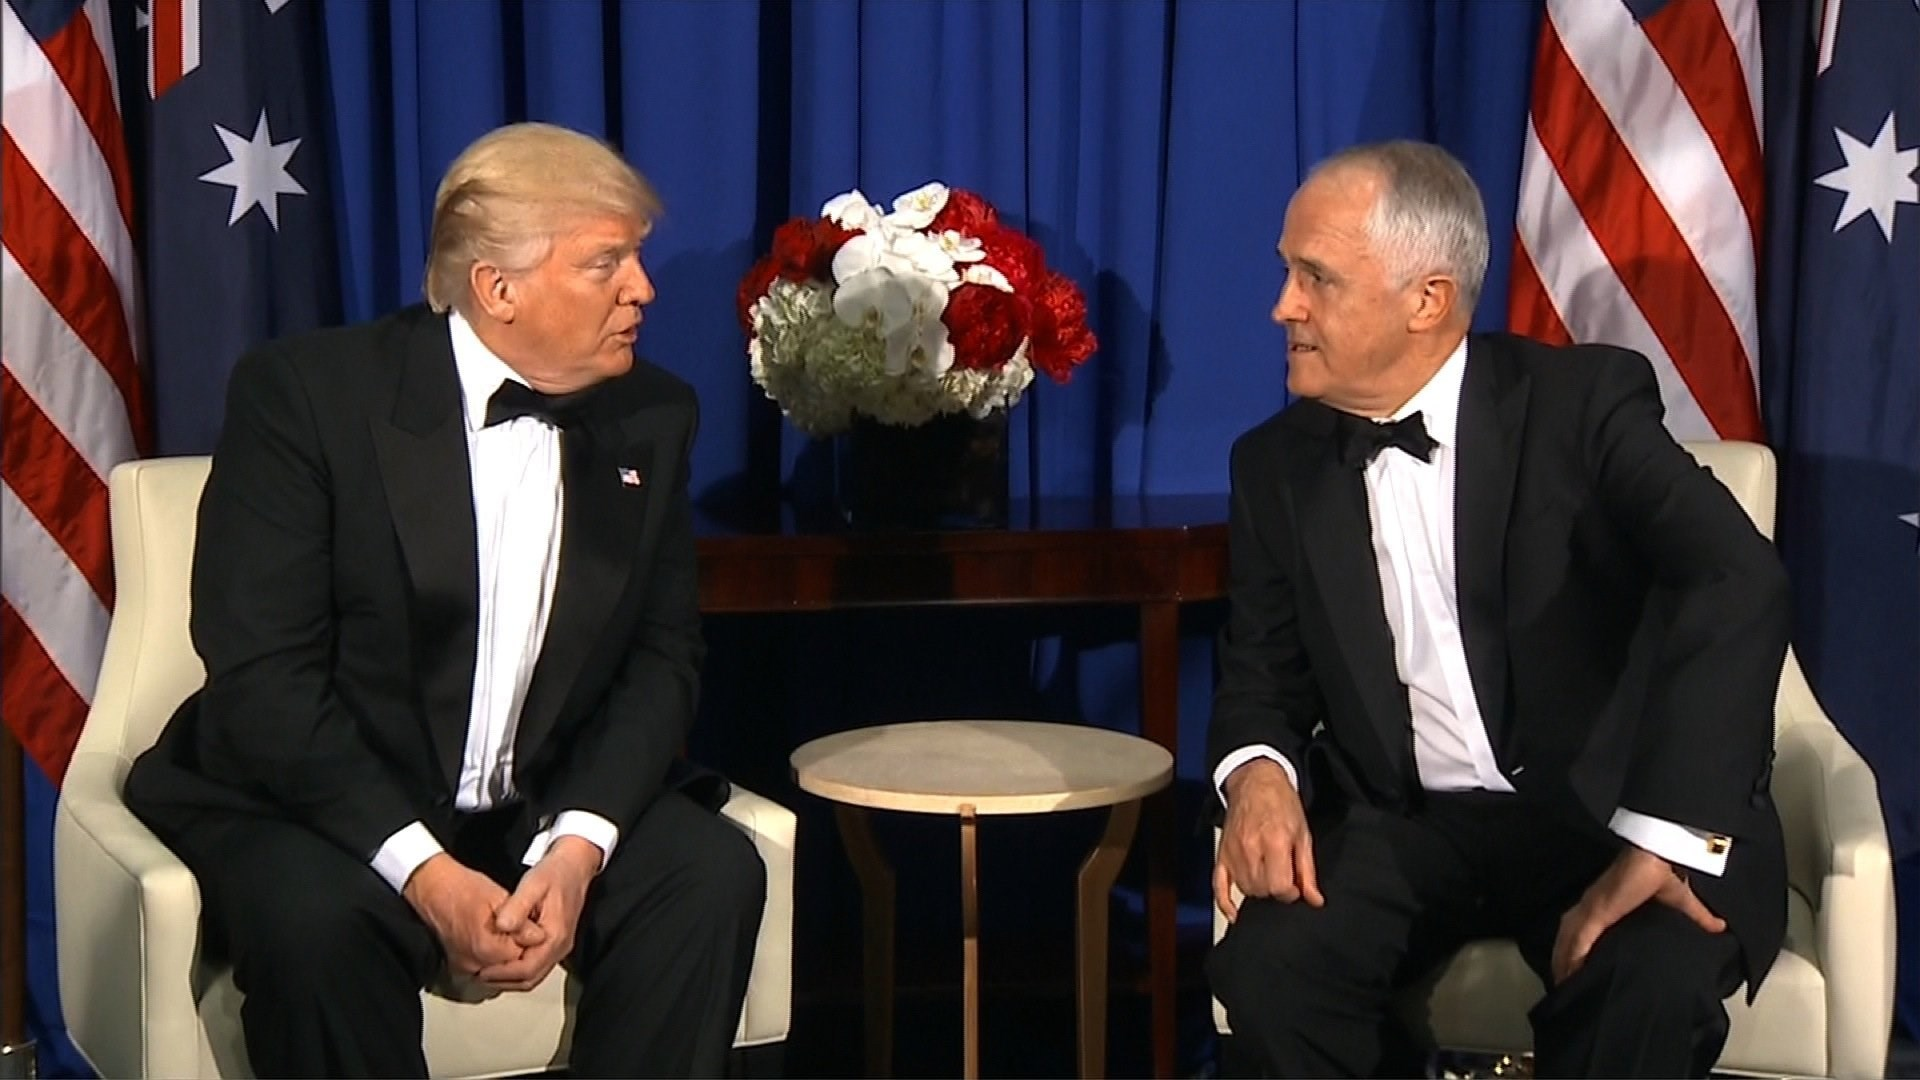 'They don't care': Refugees shocked by leaked Trump-Turnbull call